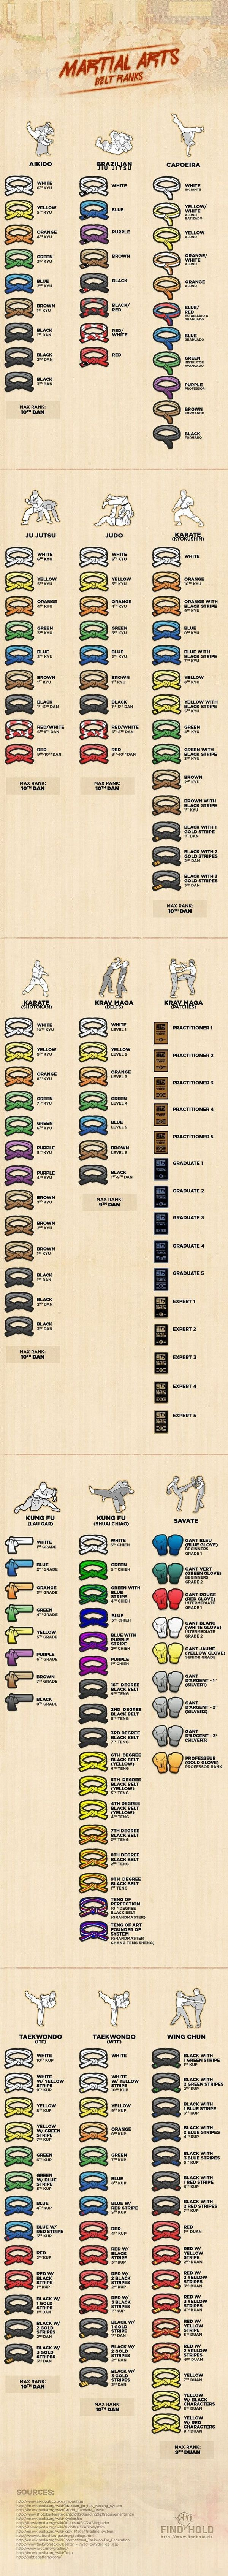 All-The-Martial-Arts-Belts-And-Colors-By-The-Style